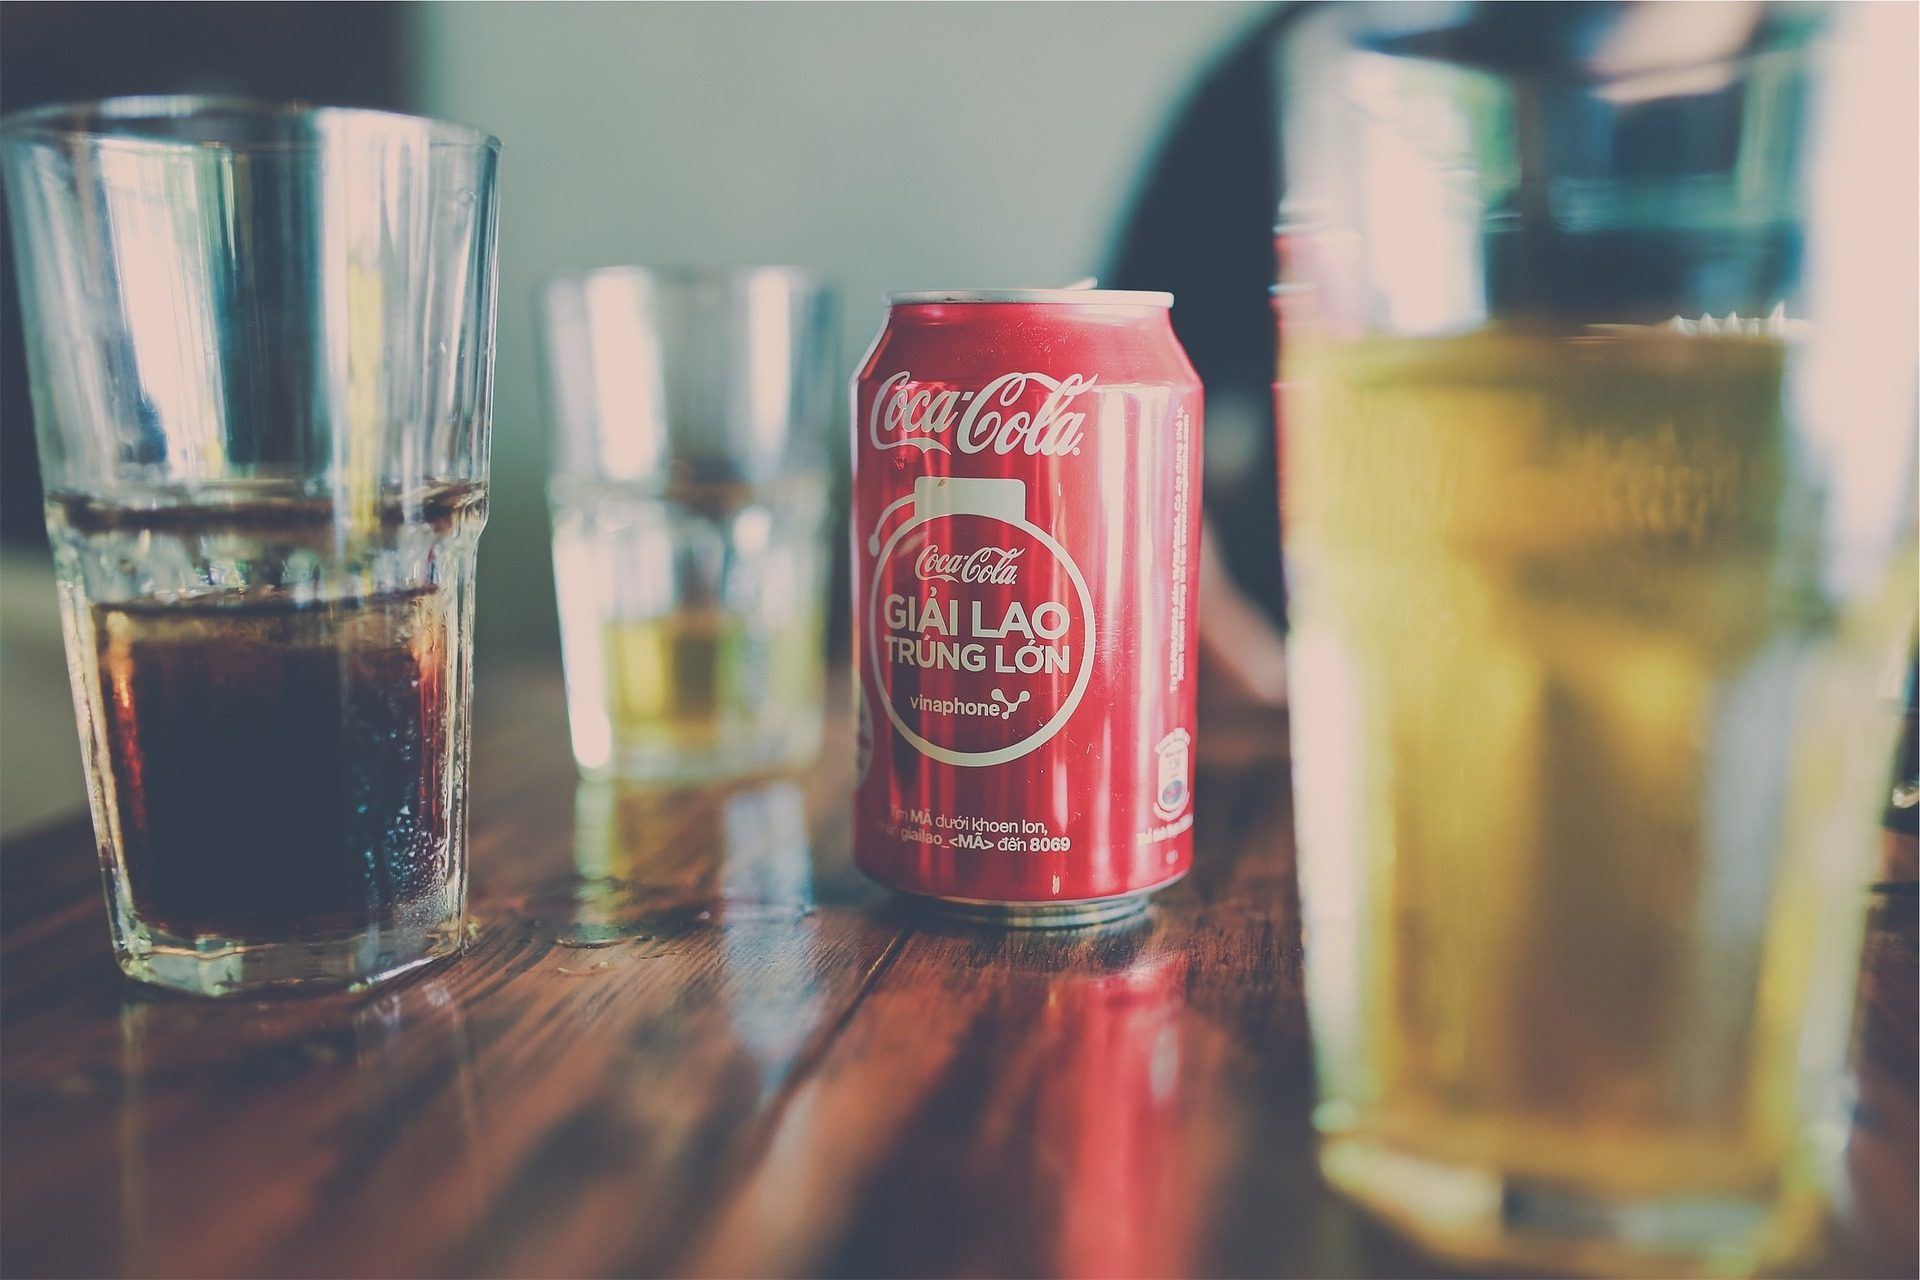 Coca Cola Finally Brings the Alcohol Just in time for summer [watch]